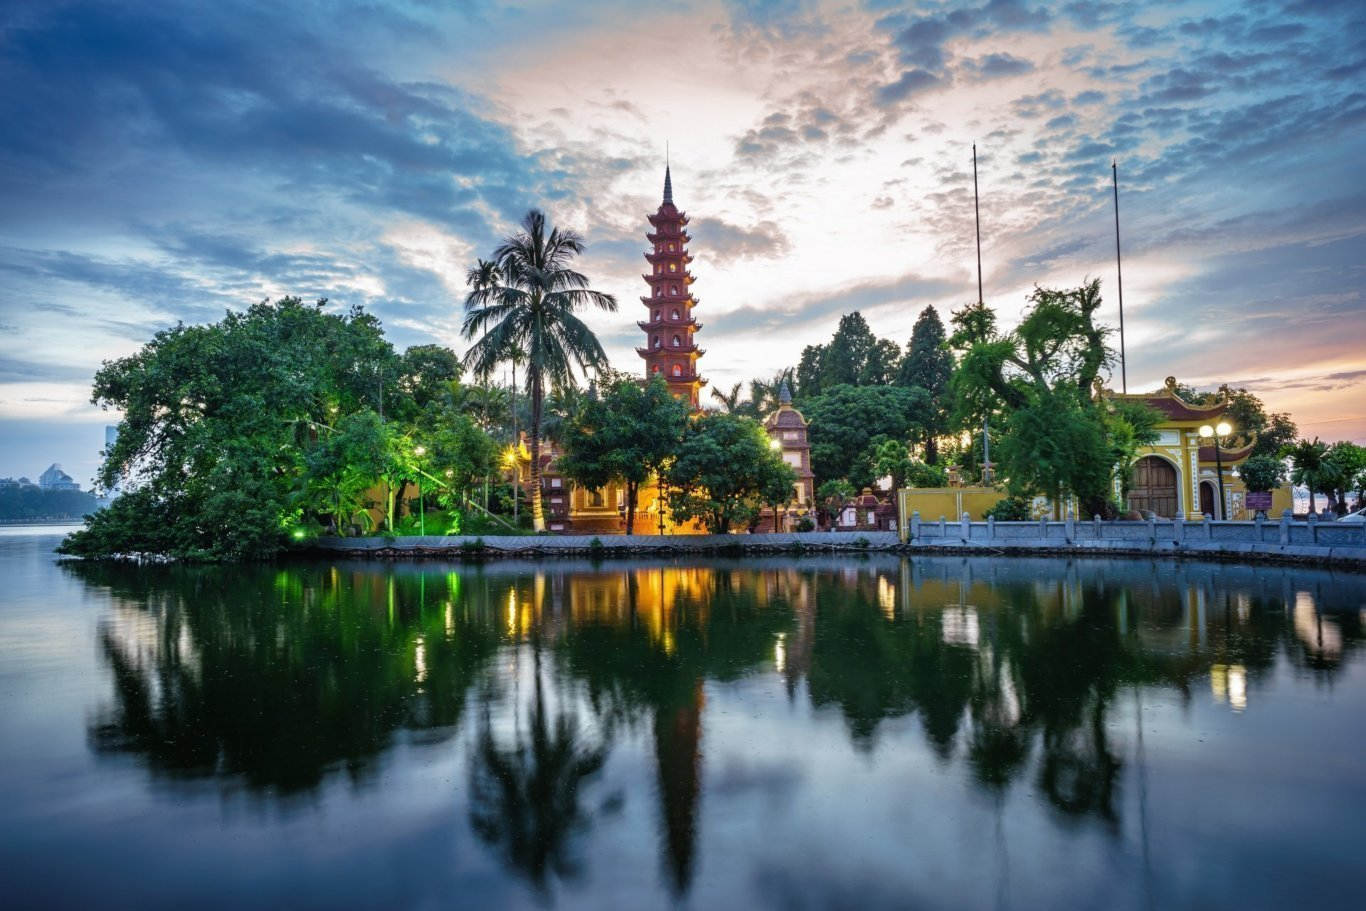 8-Day Sneak Peek of Vietnam - Vietnam Itinerary